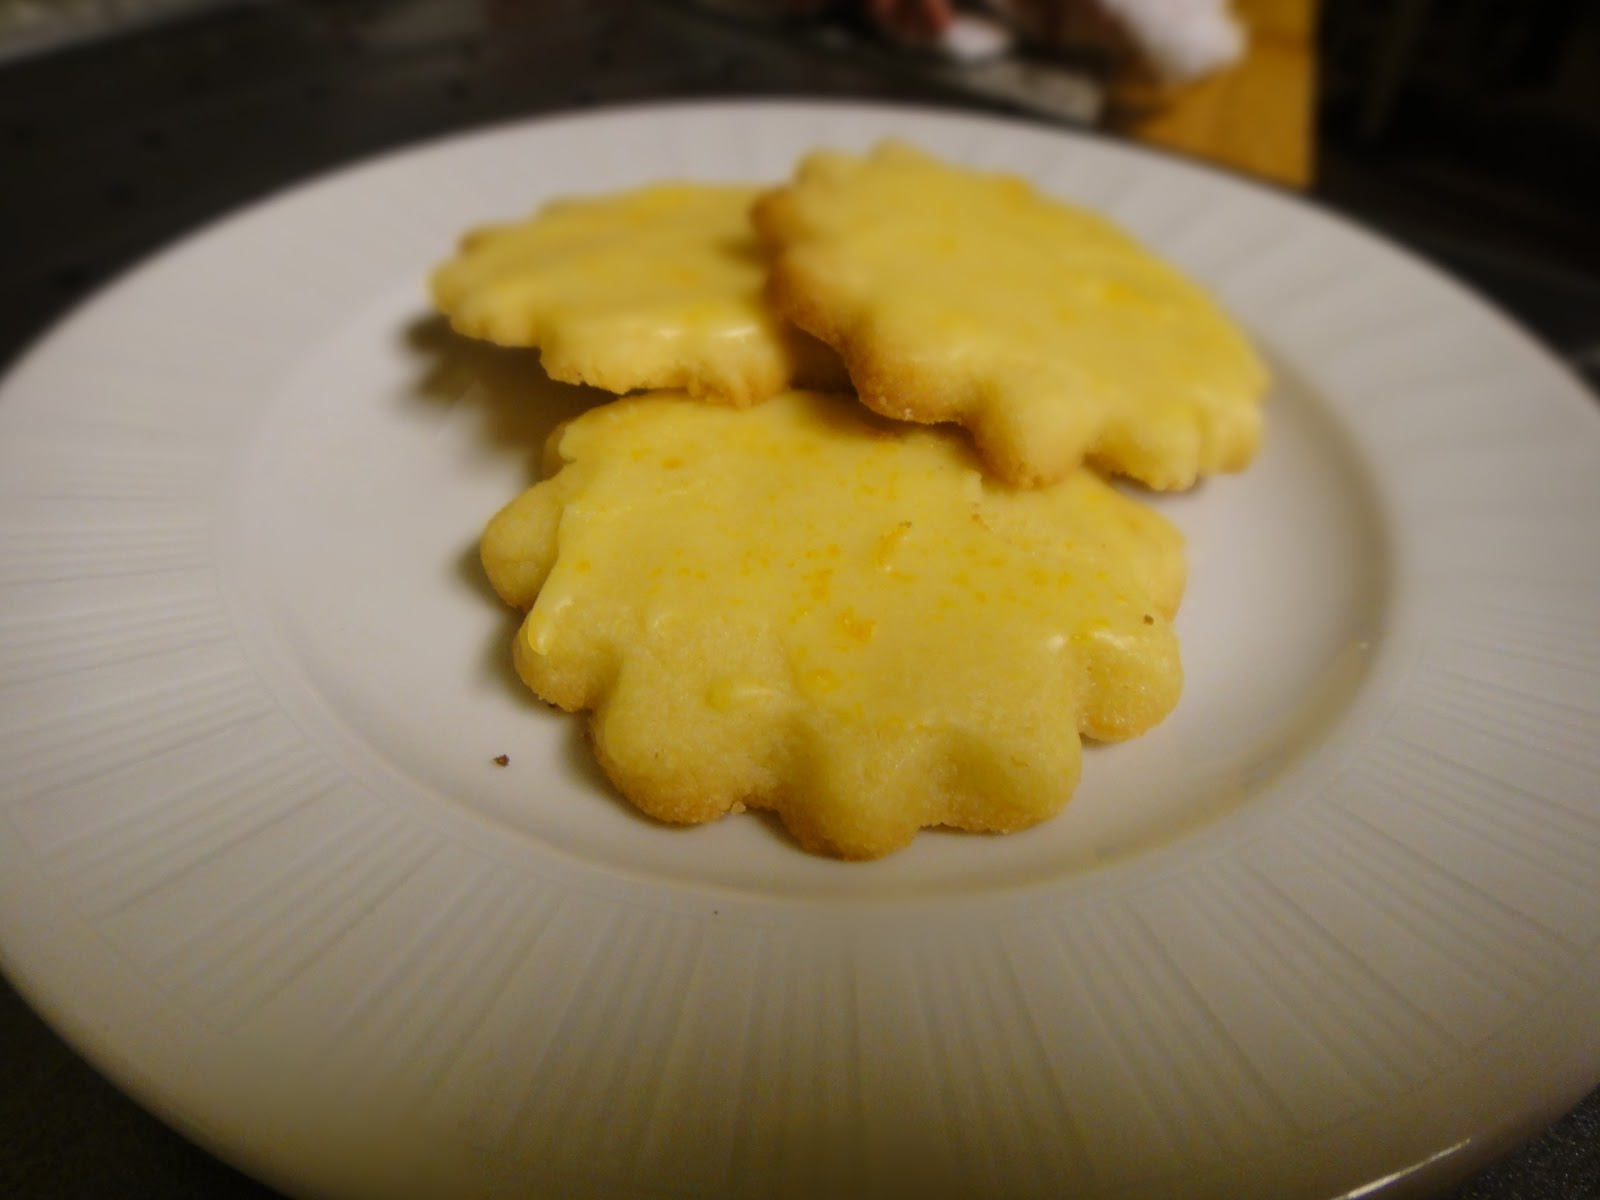 ... Holiday Cookies #2: Orange Butter Cookies with a Grand Marnier Glaze